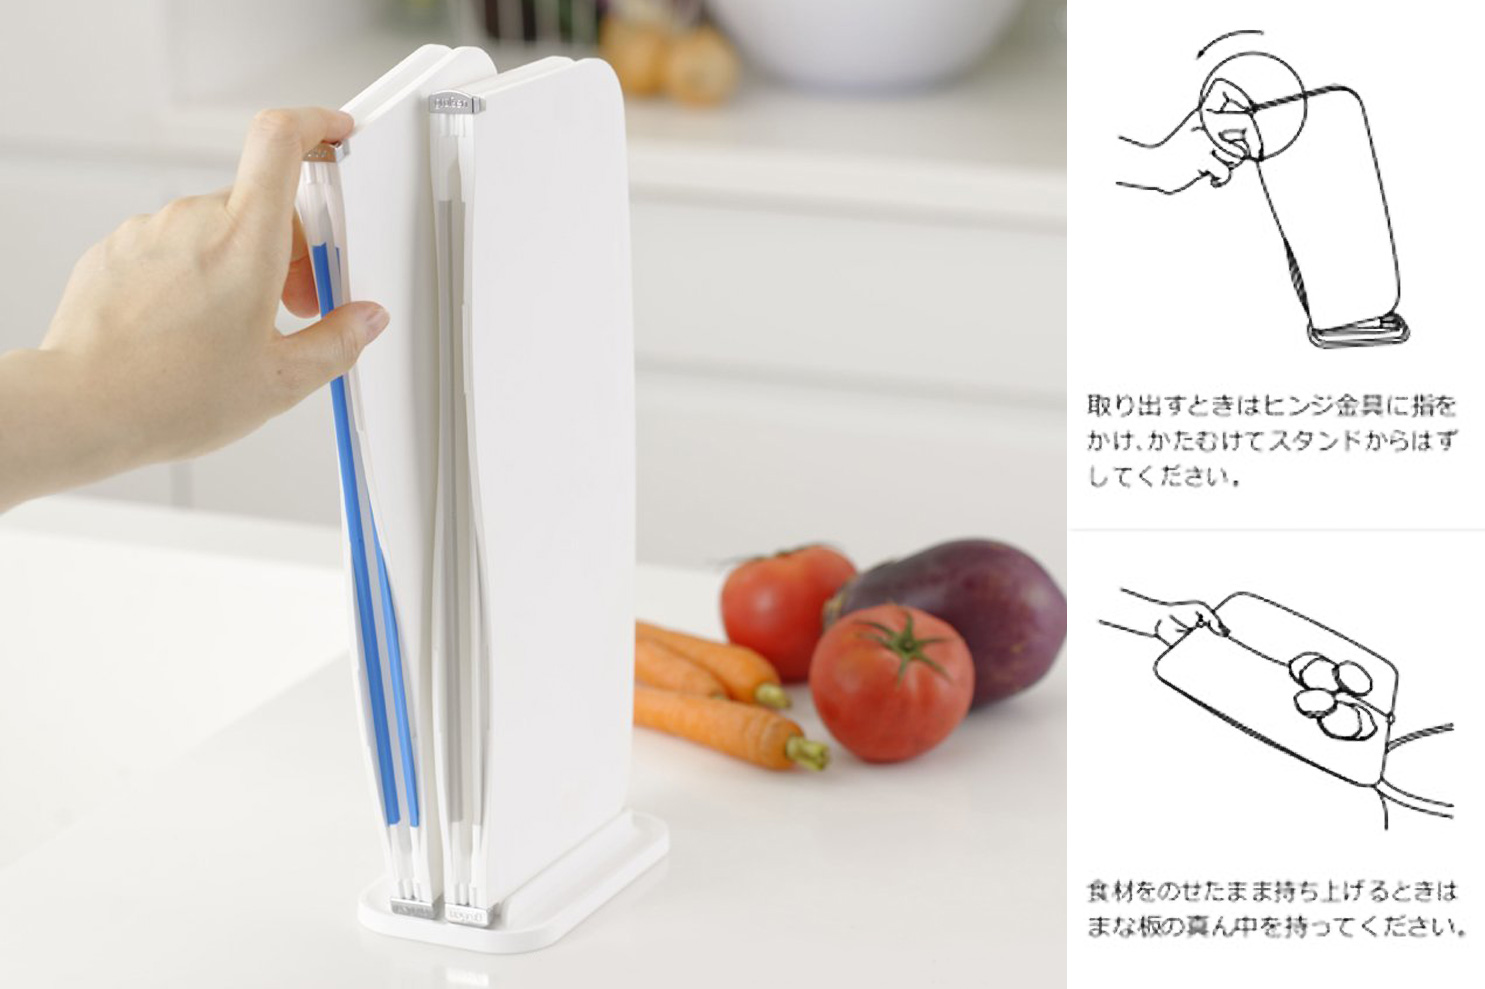 17-TulettDesign-Kaga-chopping-Board-1